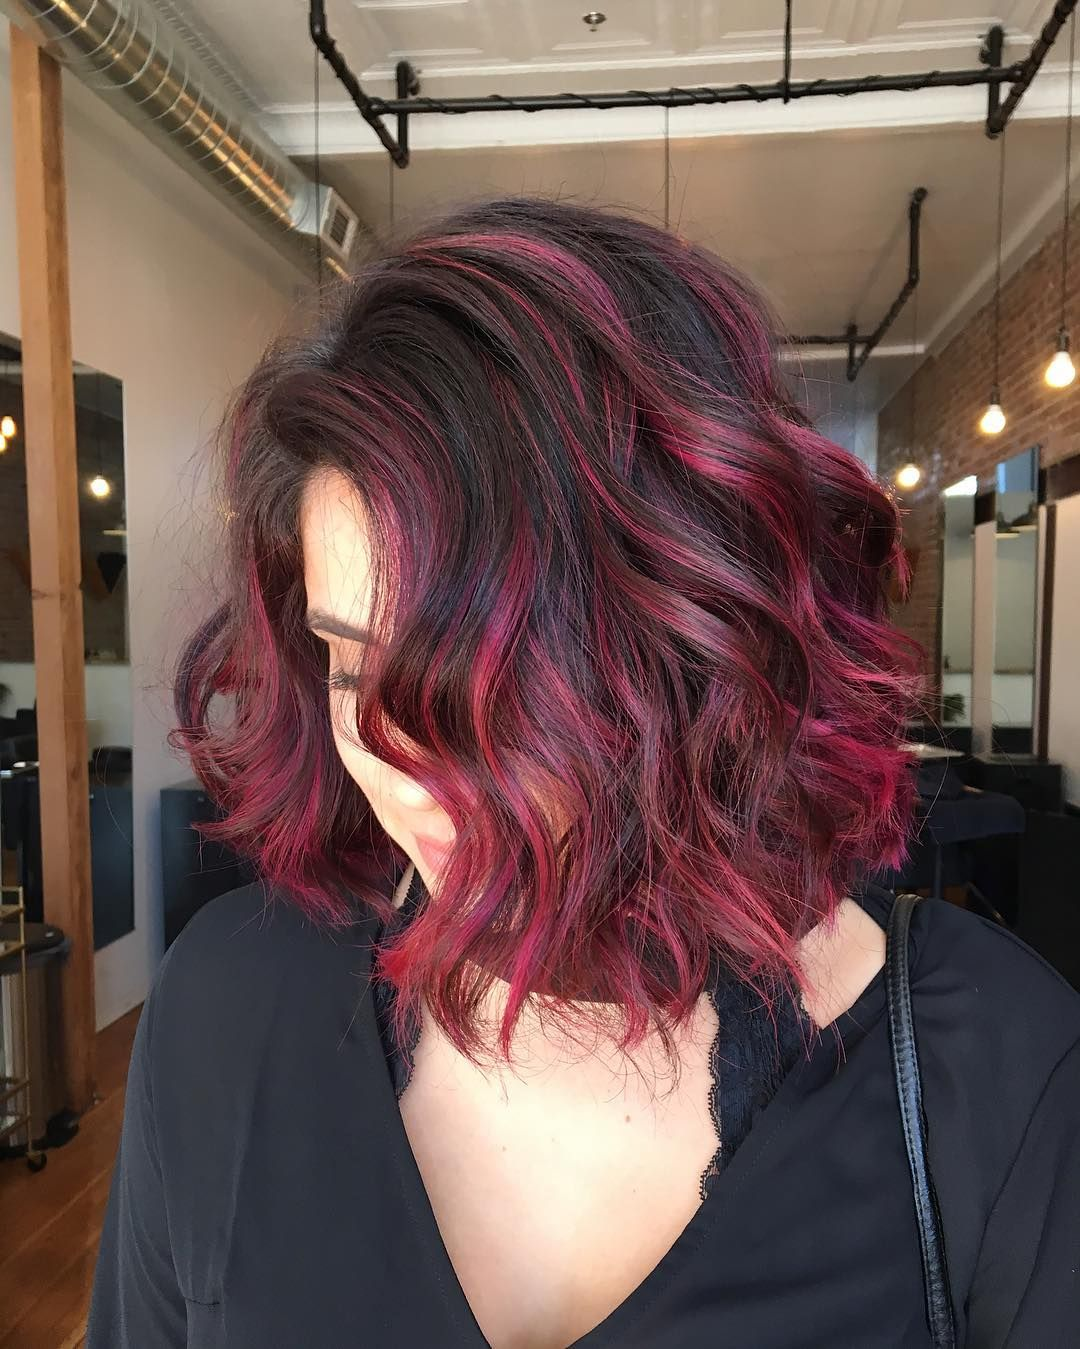 Pin By Theo Tetros On Hair Pinterest Hair Hair Styles And Ombre